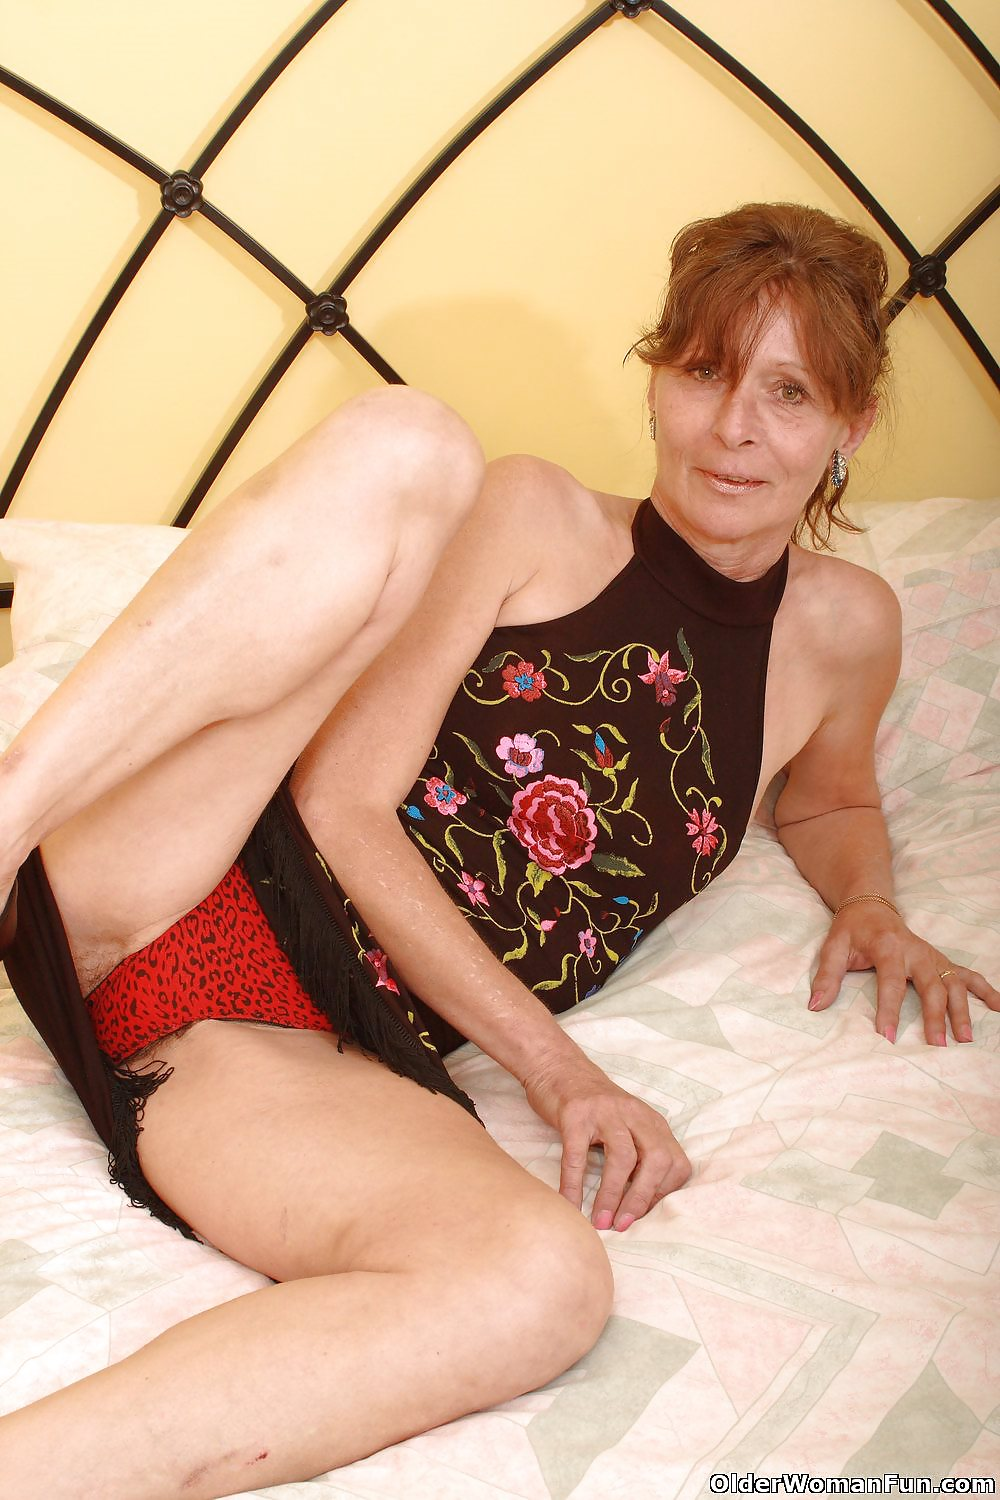 Vikki From Olderwomanfun - 12 Pics - Xhamstercom-5063